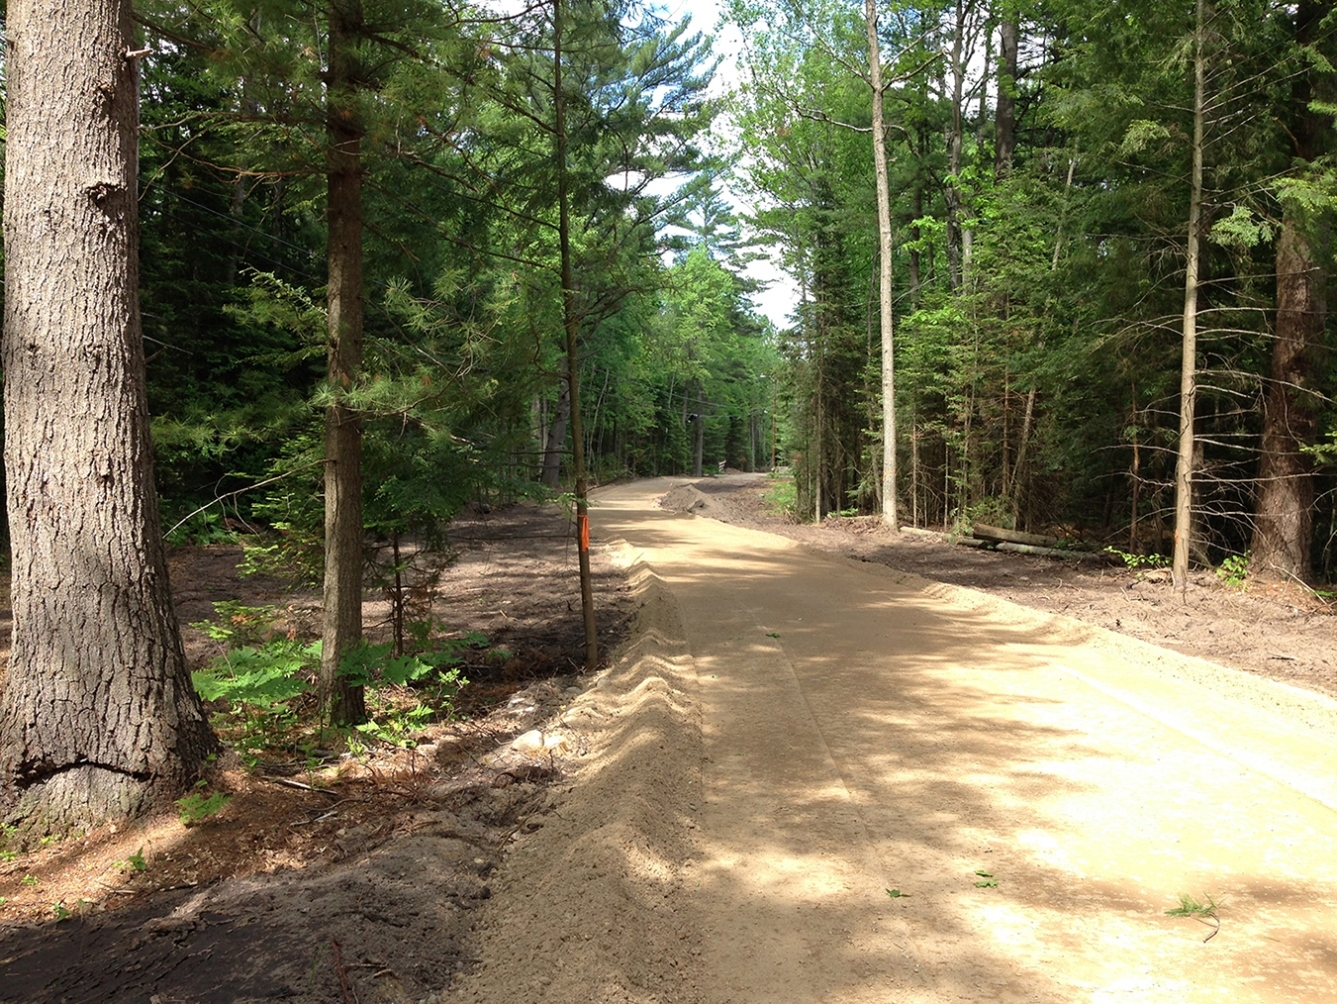 In 2017, a 2-mile segment of Michigan's Iron Belle Trail at North Higgins Lake was completed.